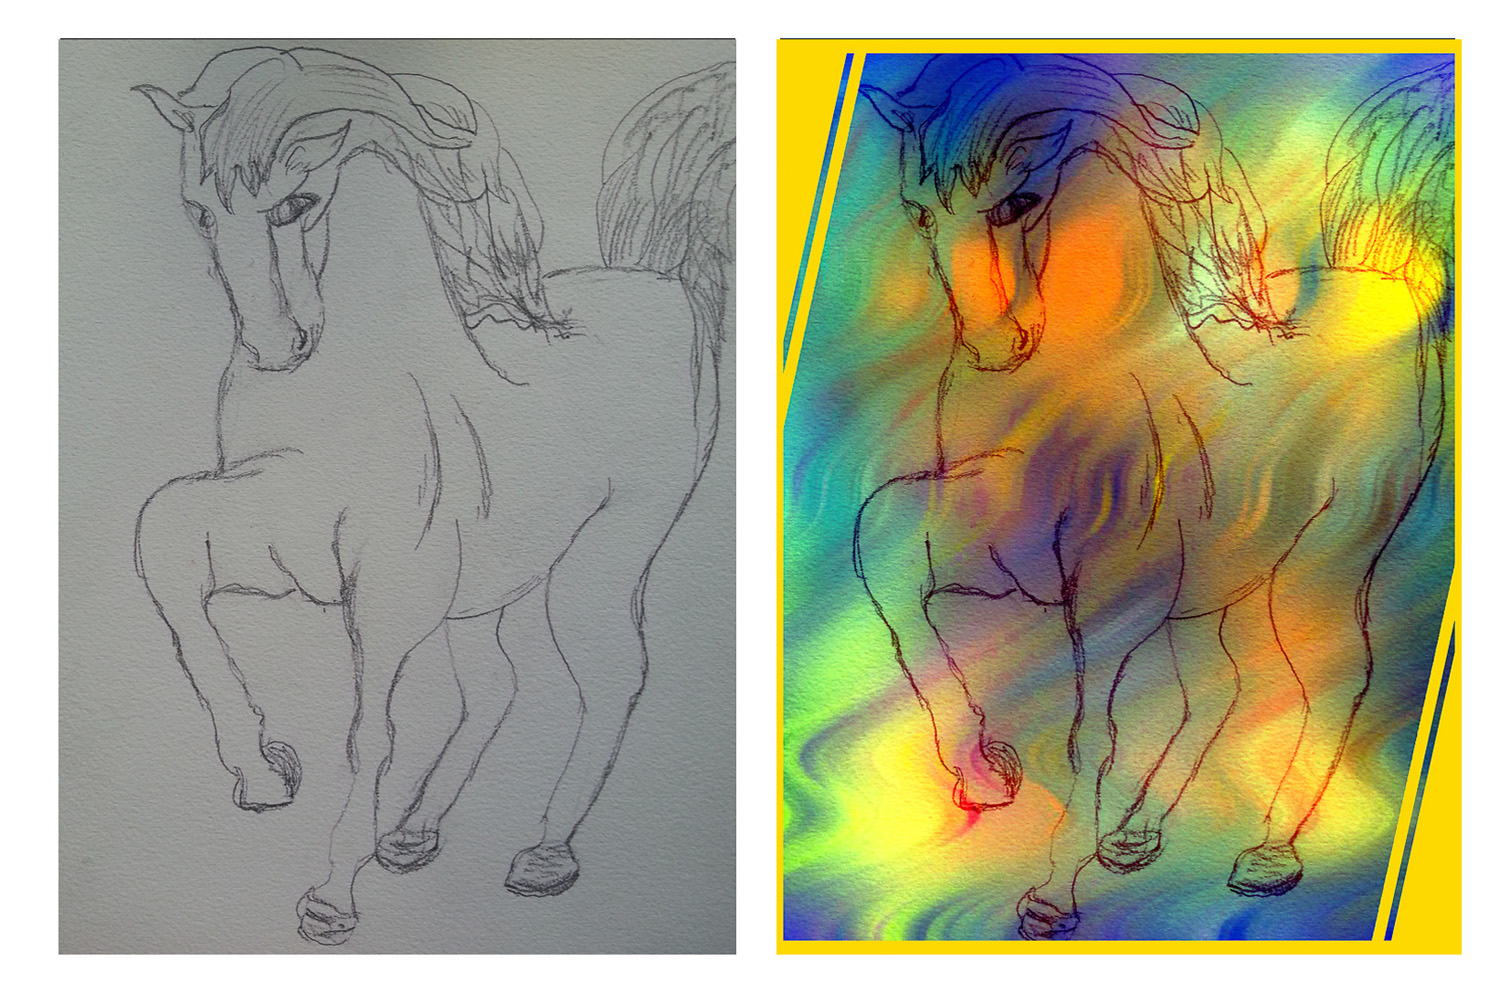 Scarlet's horse drawing. Pencil sketch and completed colour image.